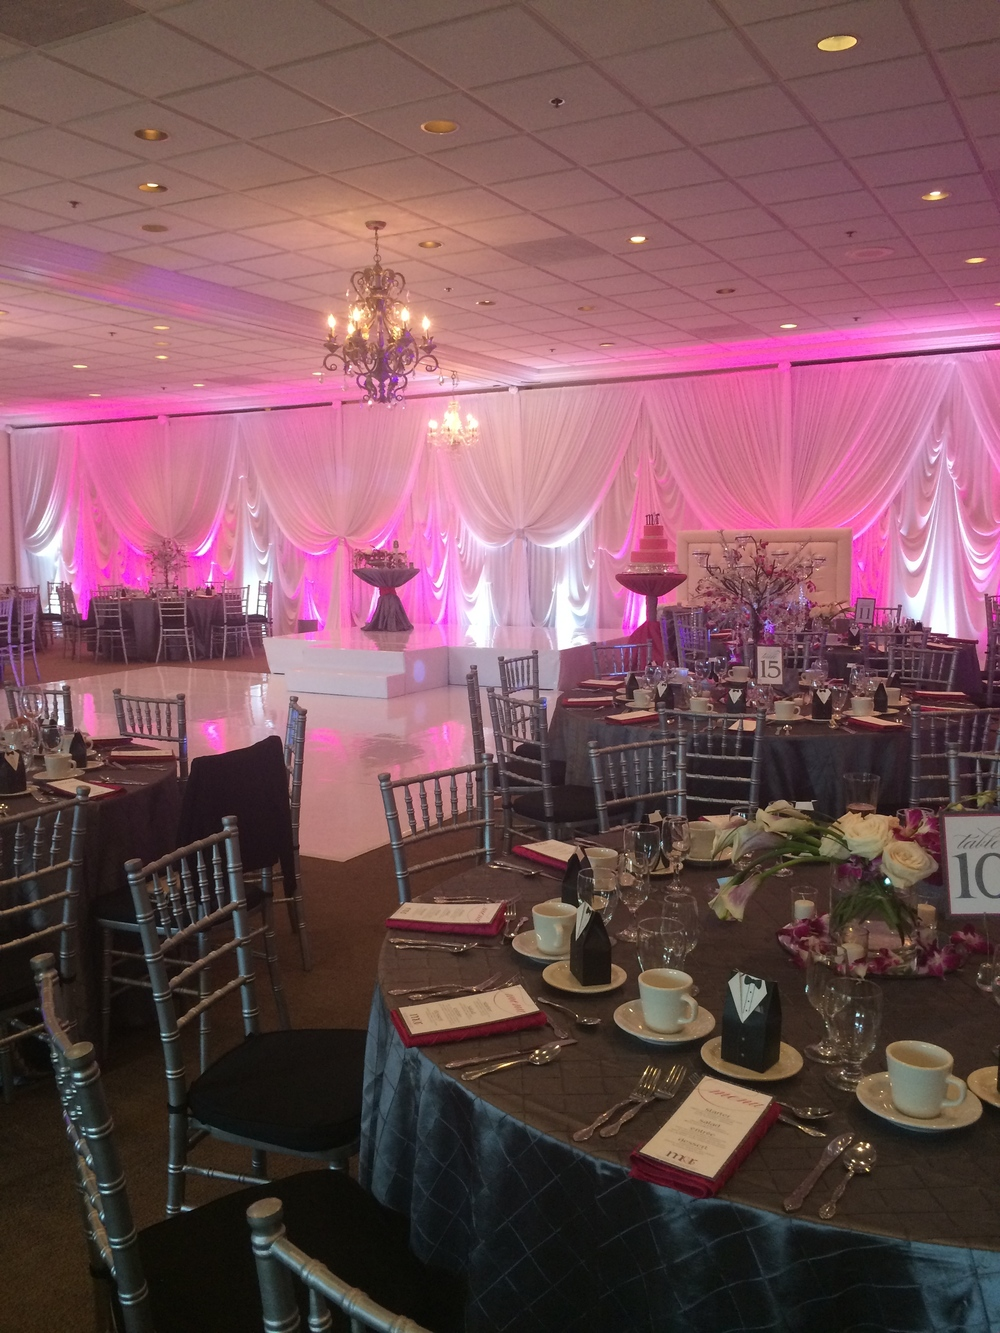 Oak Lawn Country Club was transformed to the groom's exact specifications!   Destination Wedding Planner Chicago & Las Veags: Andrea Eppolito |  Rentals and Decor: EEL  |  Floral: Michell's Orland Park